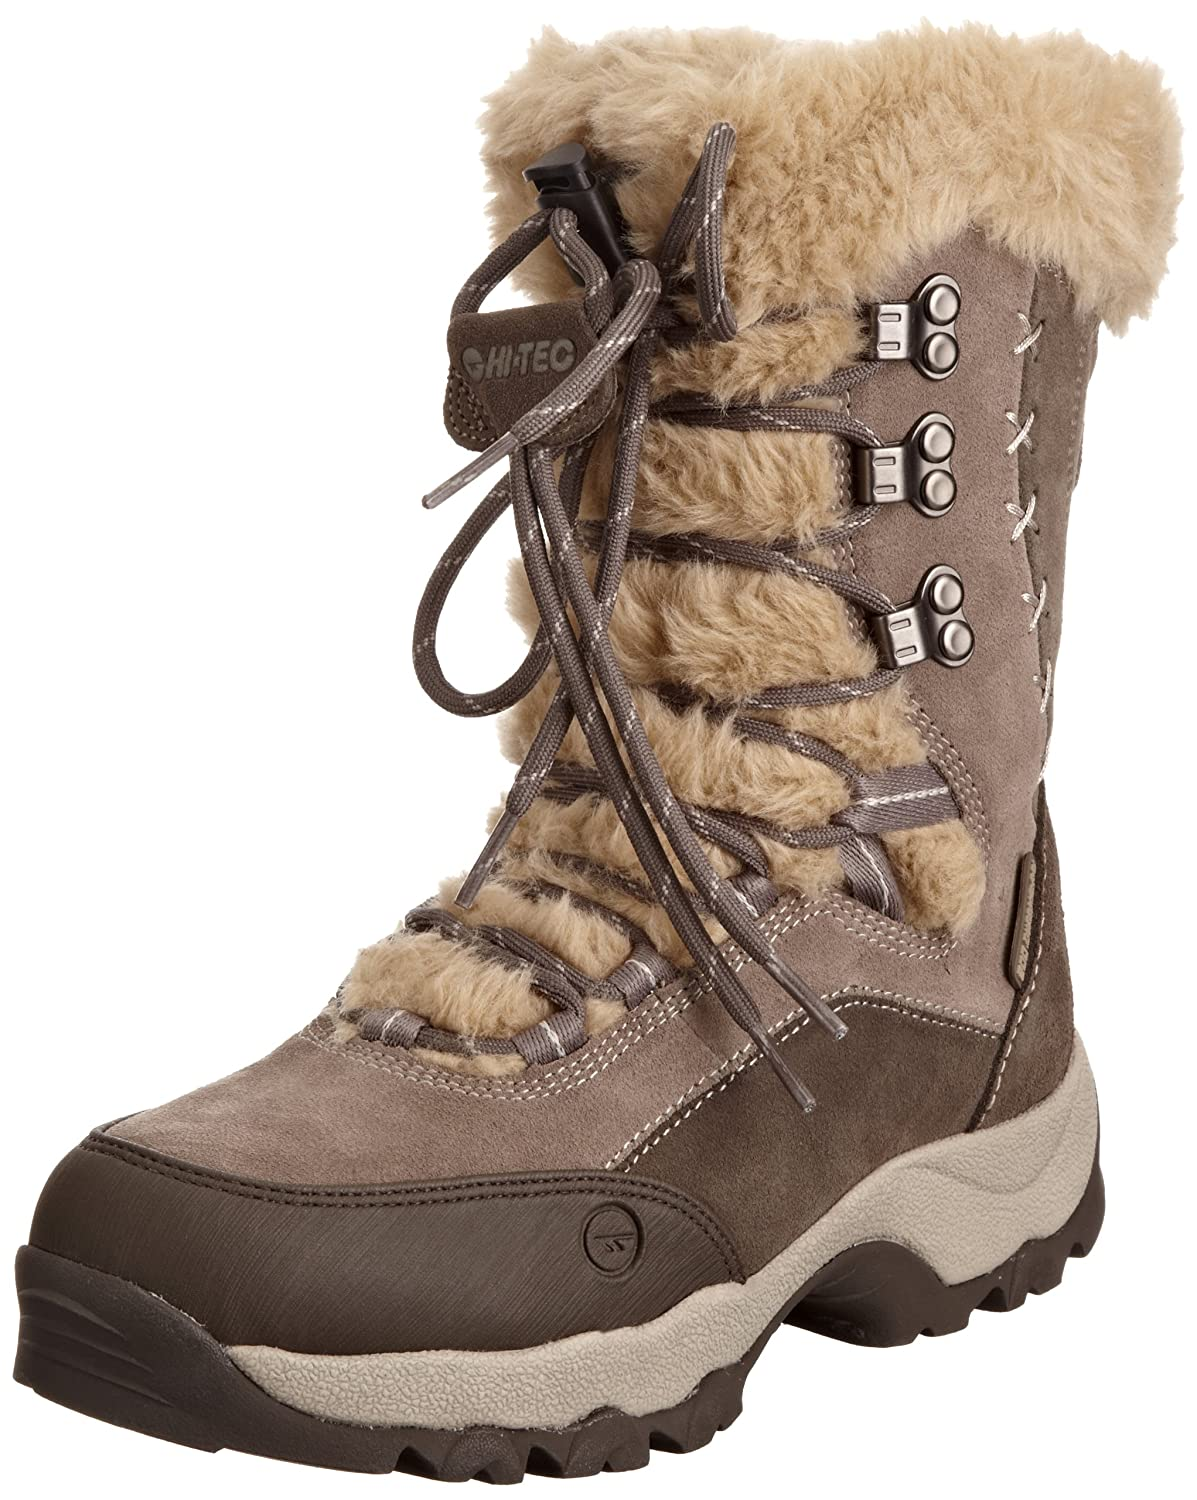 Hi-Tec St Moritz 200 Women's Waterproof Walking Boots